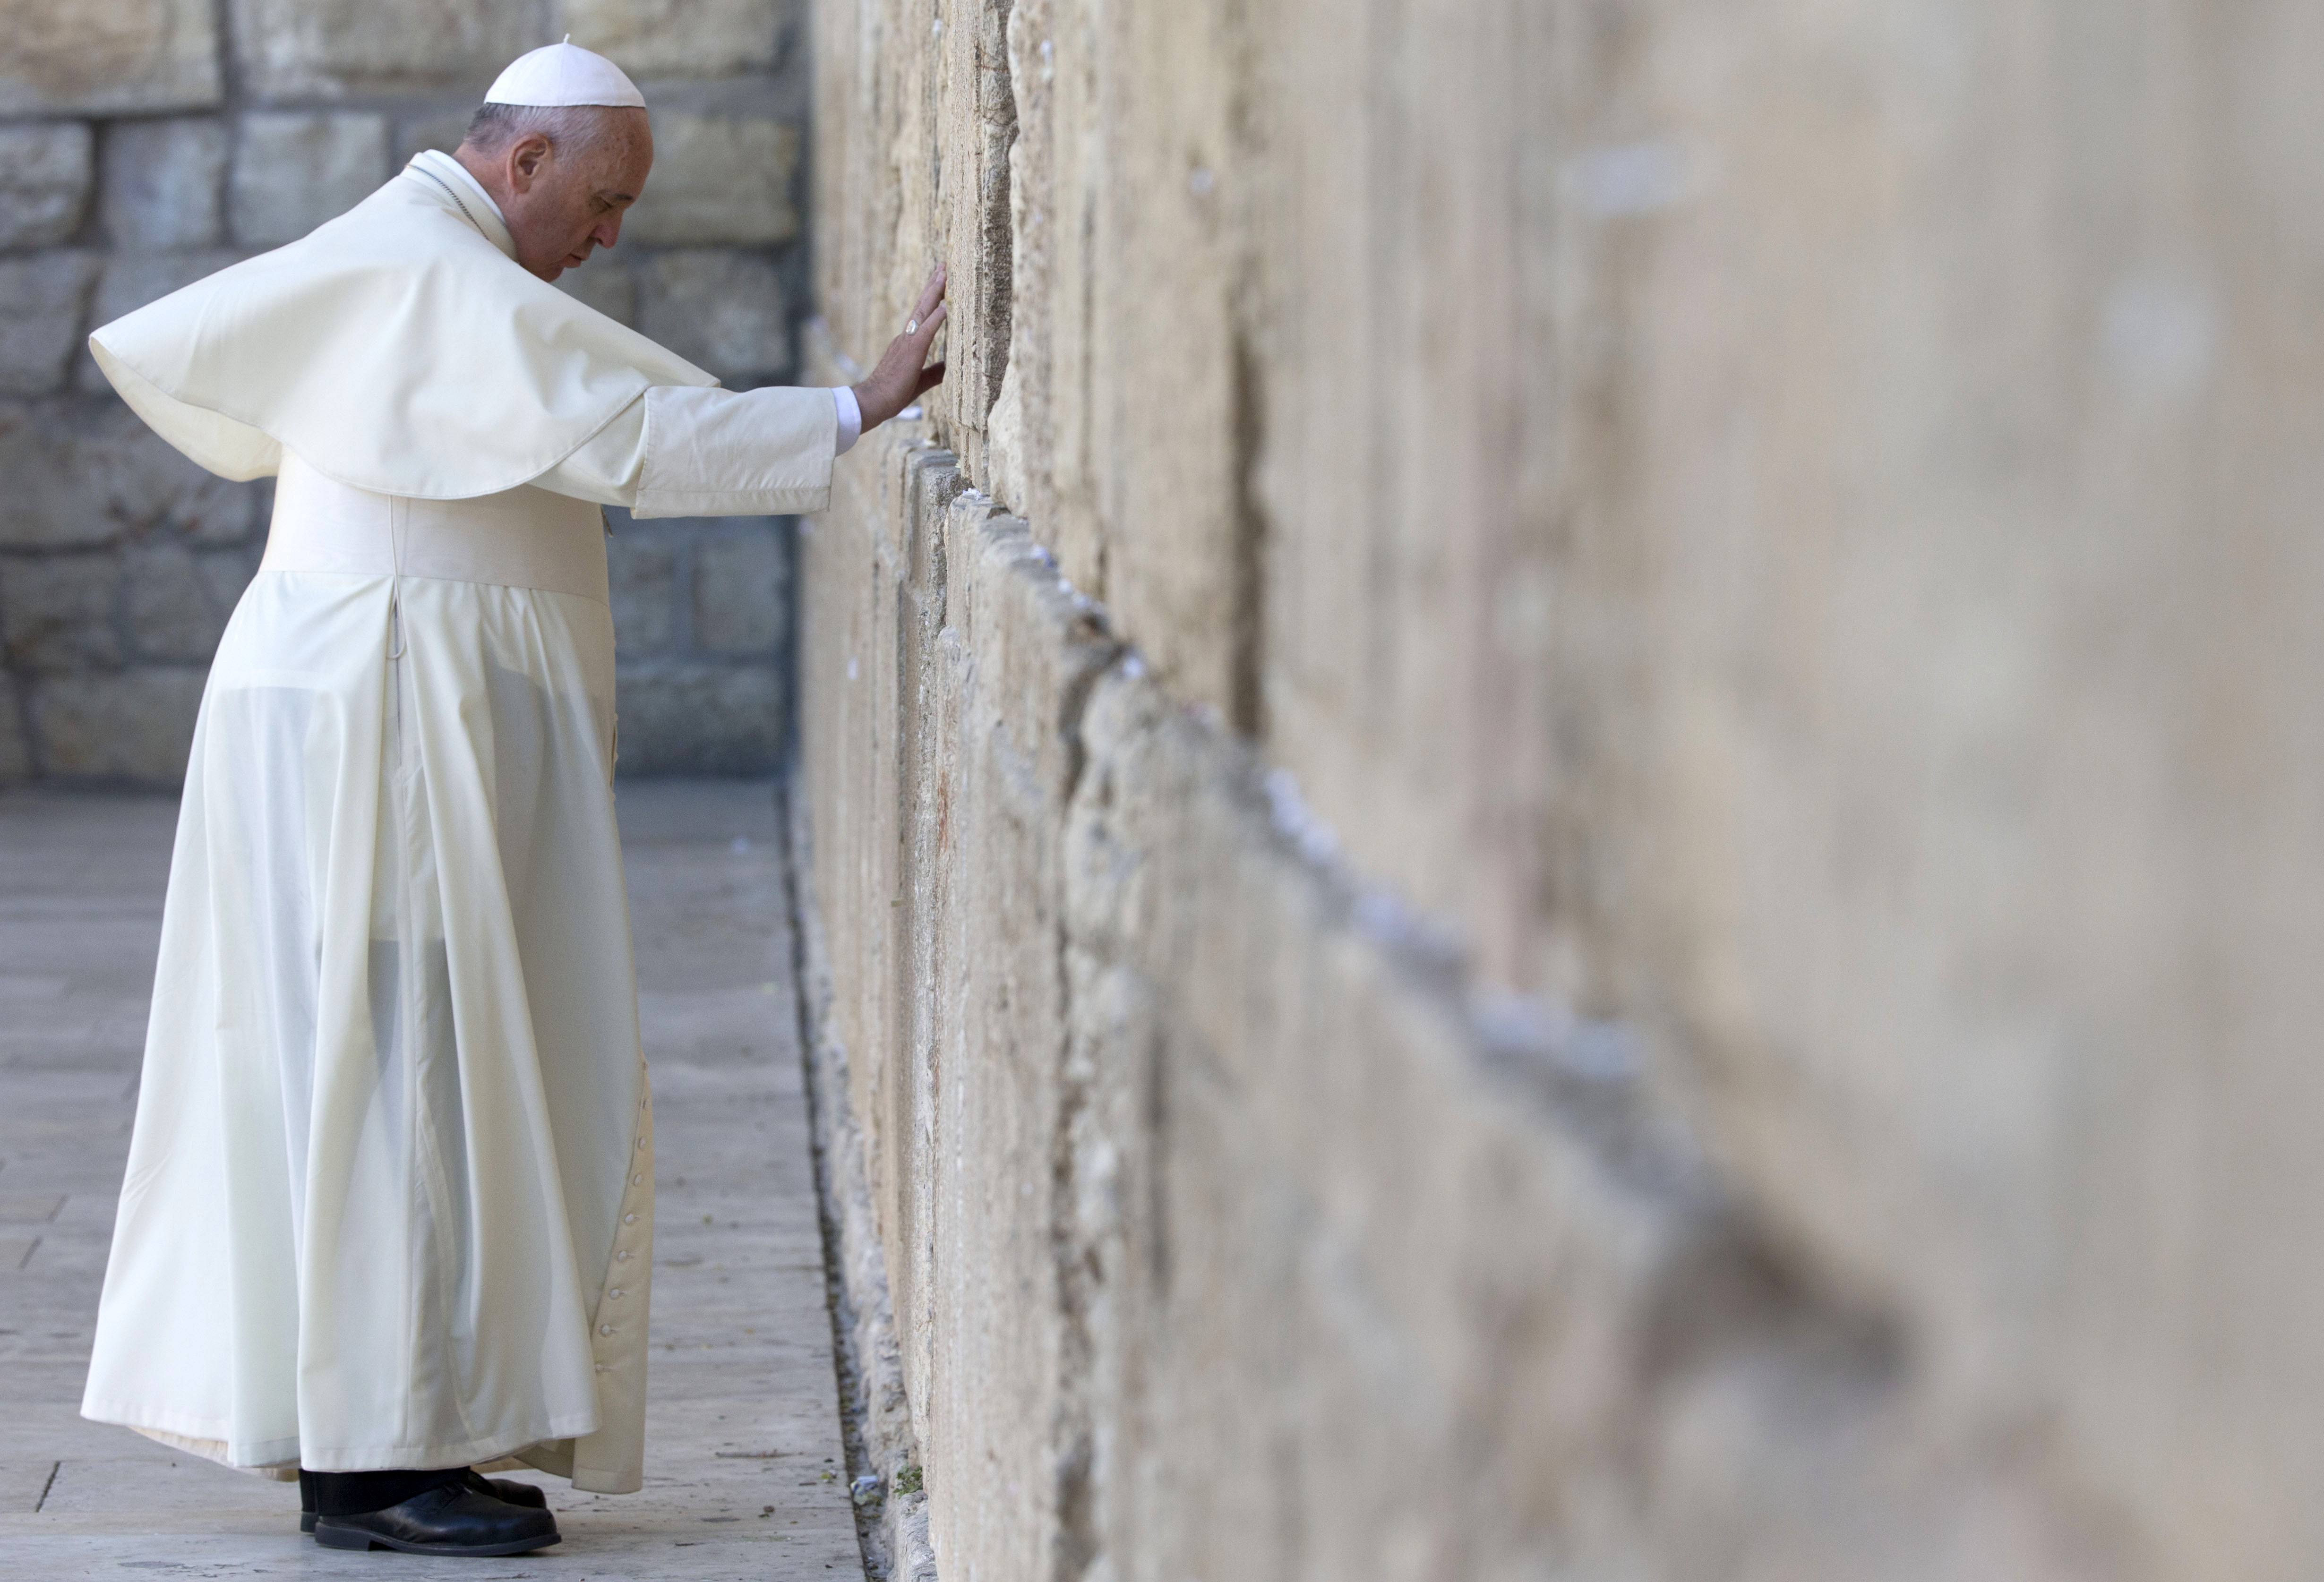 Pope Francis prays at the Western Wall, the holiest place where Jews can pray, in the old city of Jerusalem, Israel, Monday, May 26, 2014.